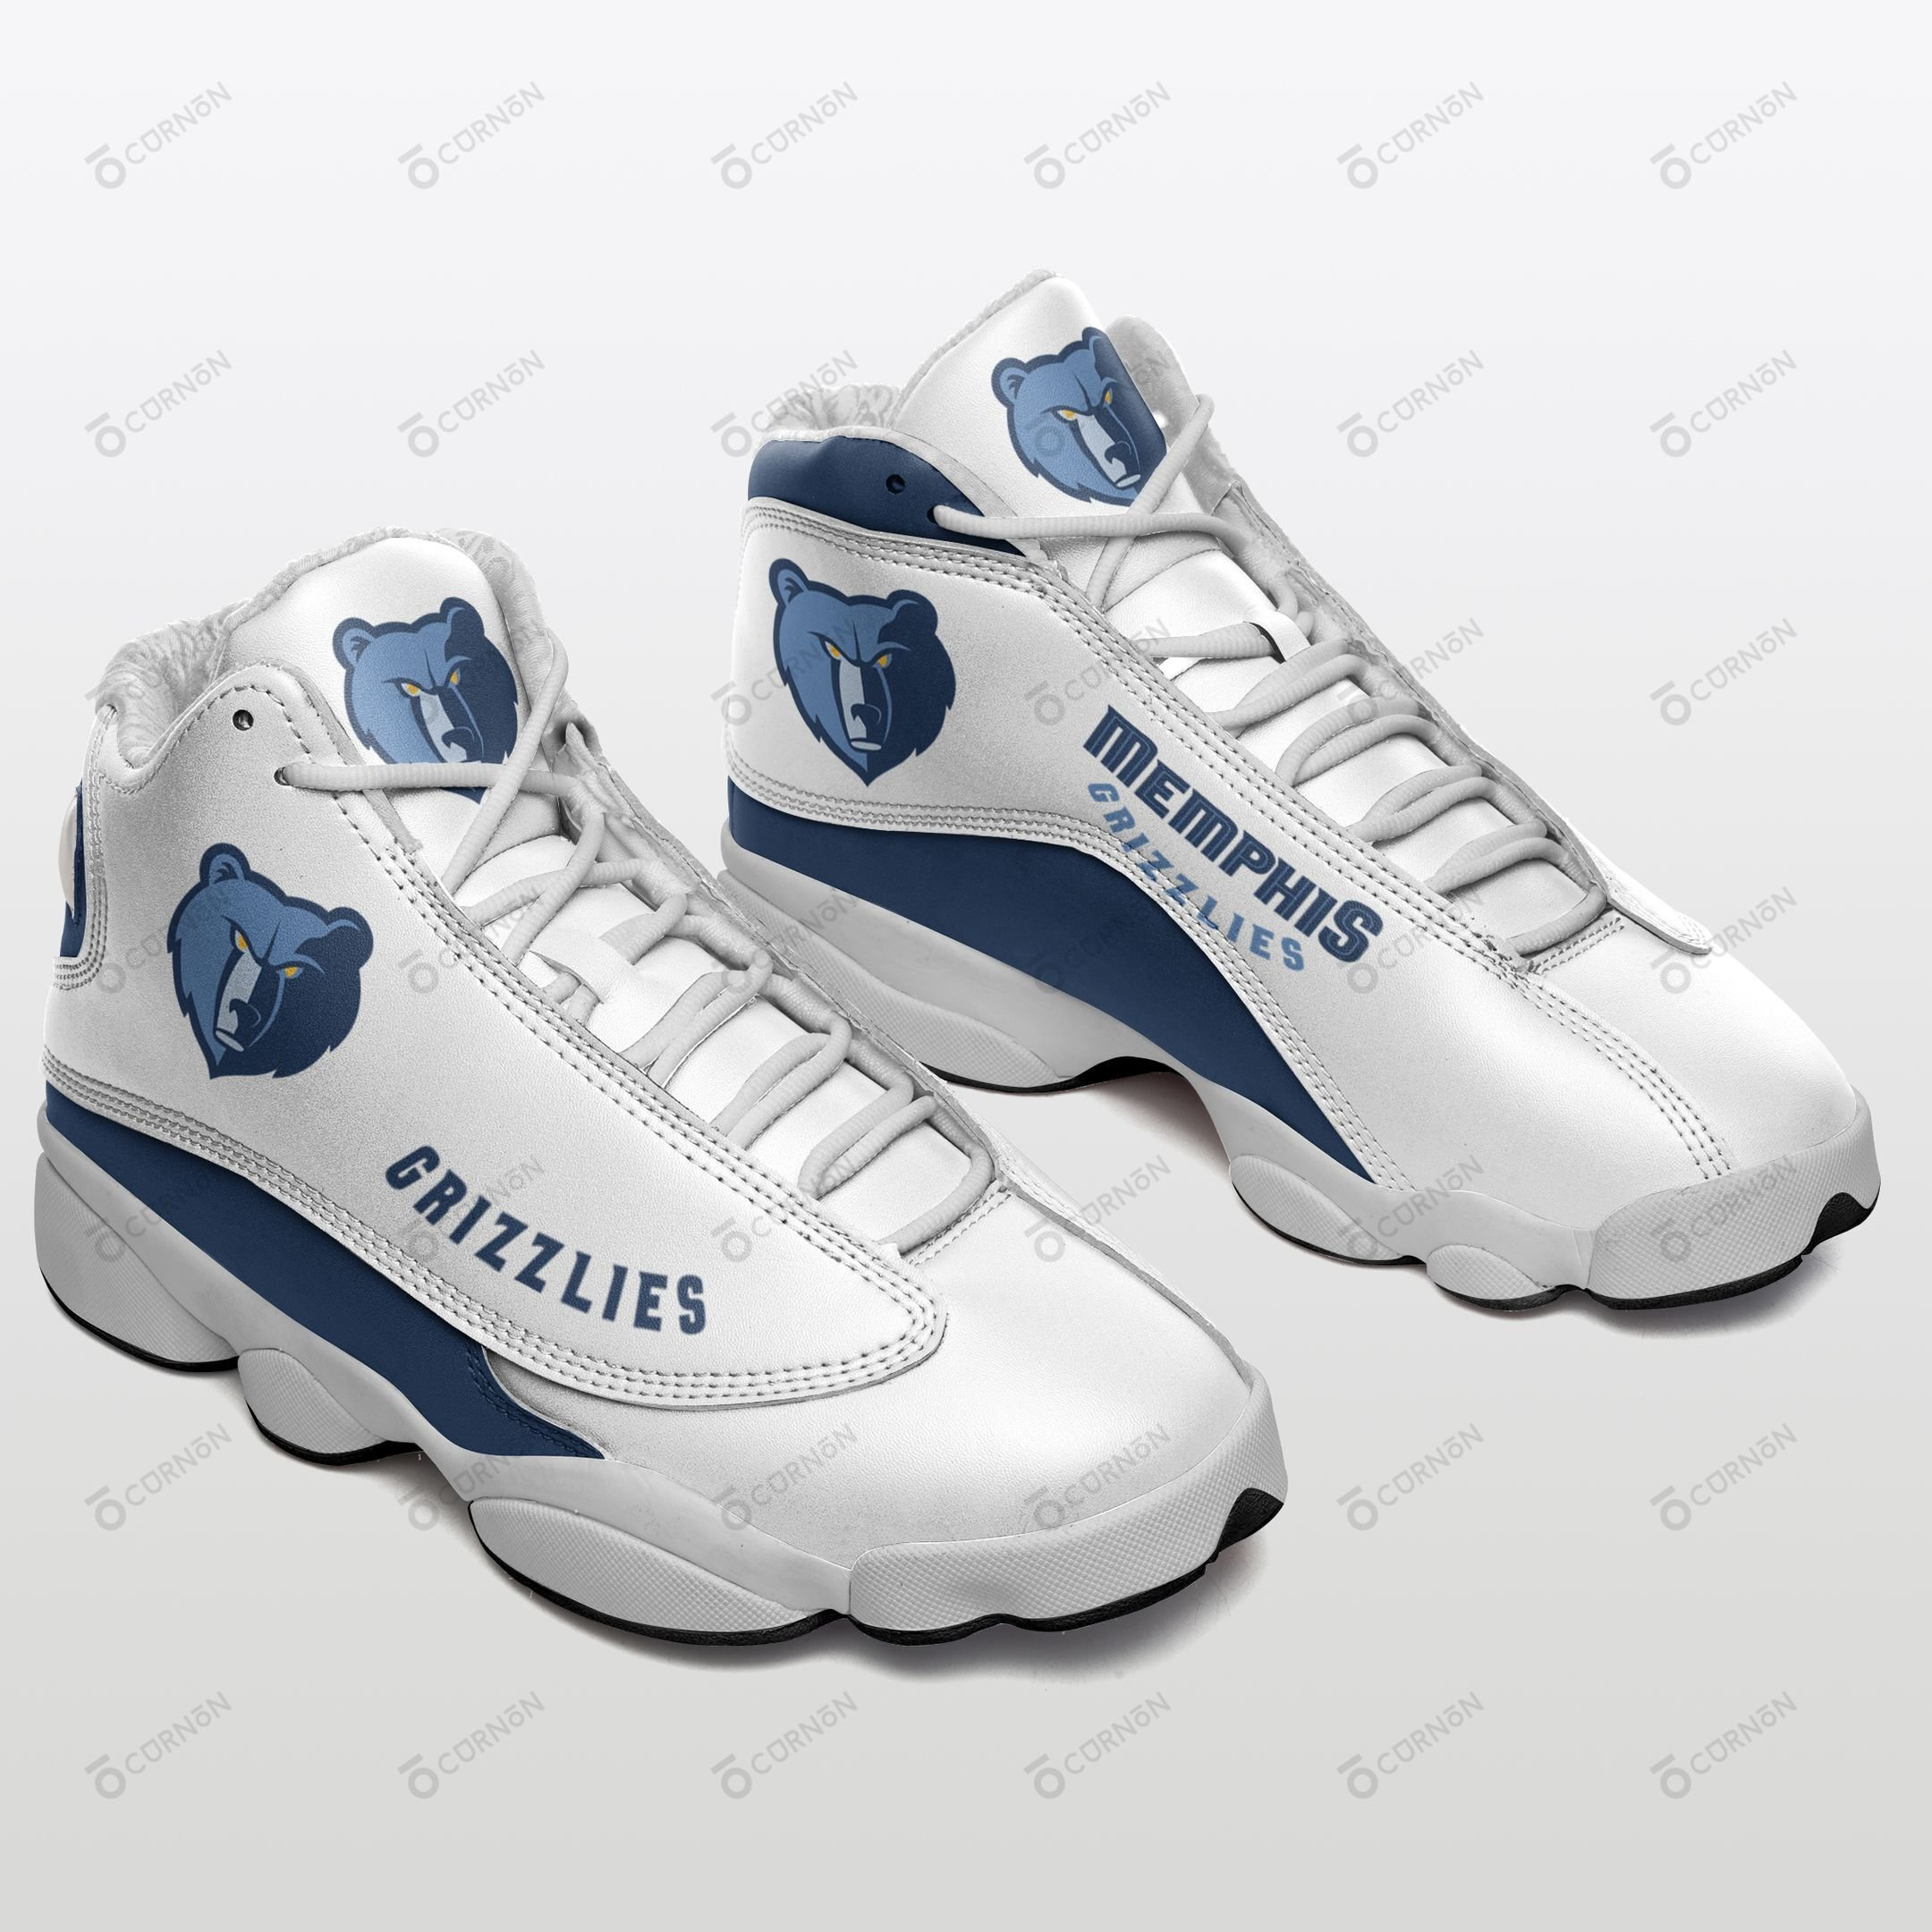 Memphis Grizzlies Air JD13 Sneakers 070